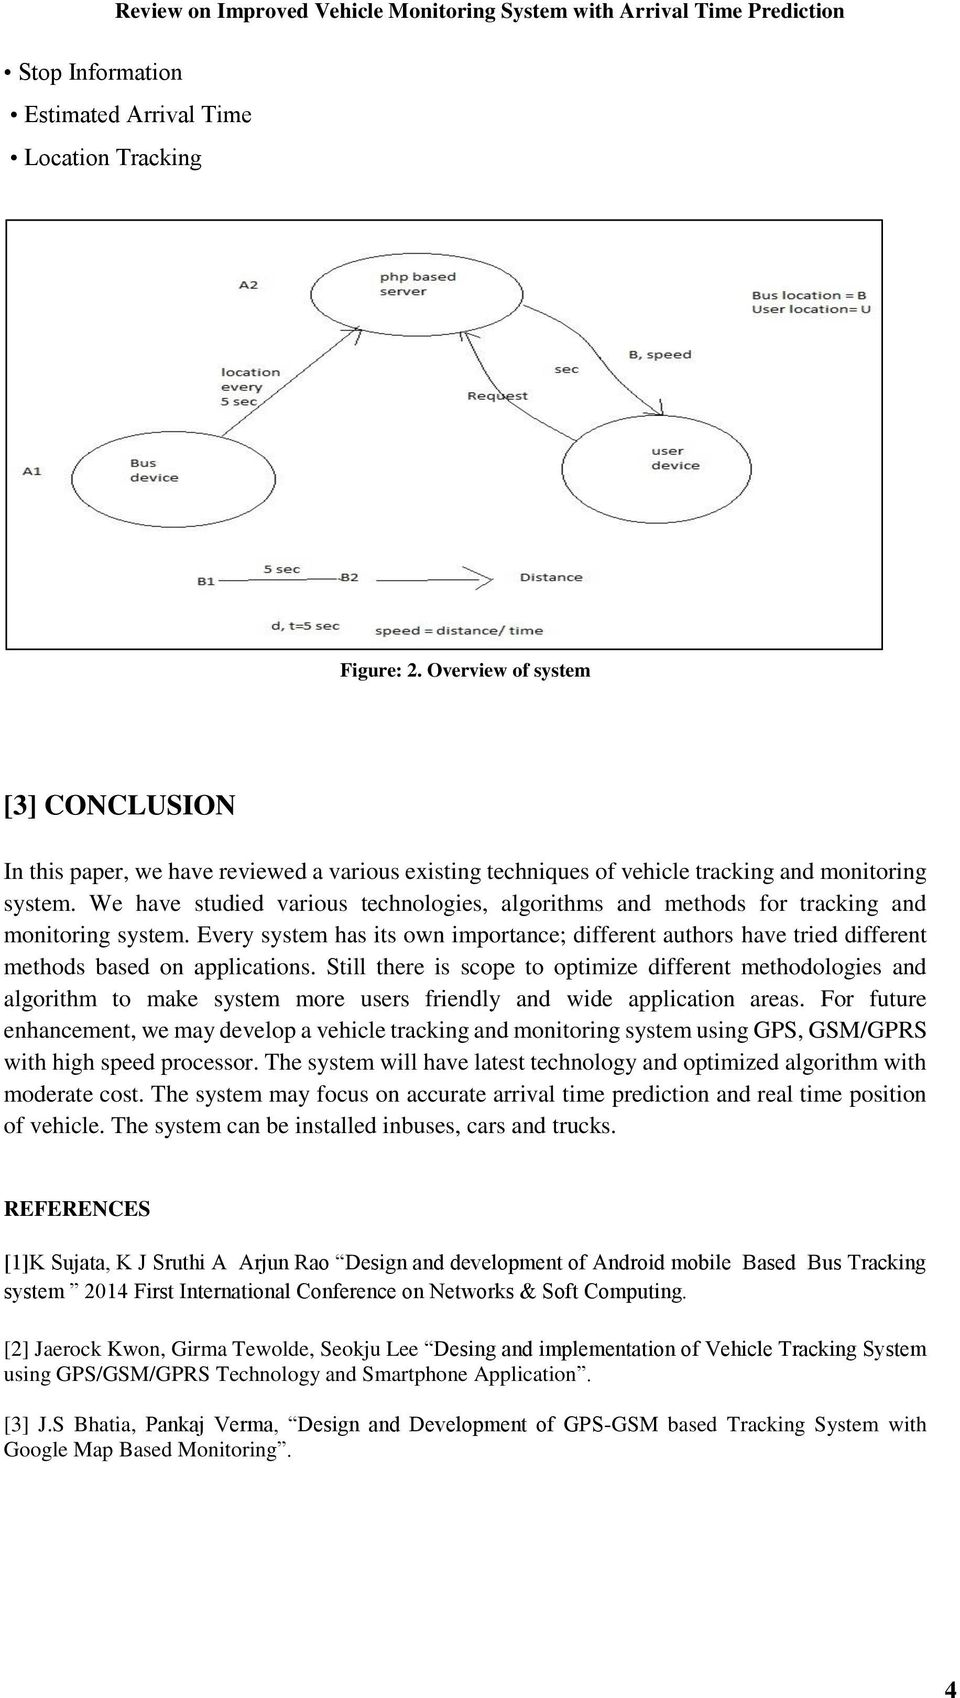 Review On Improved Vehicle Monitoring System With Arrival Time Predicition Pdf Free Download